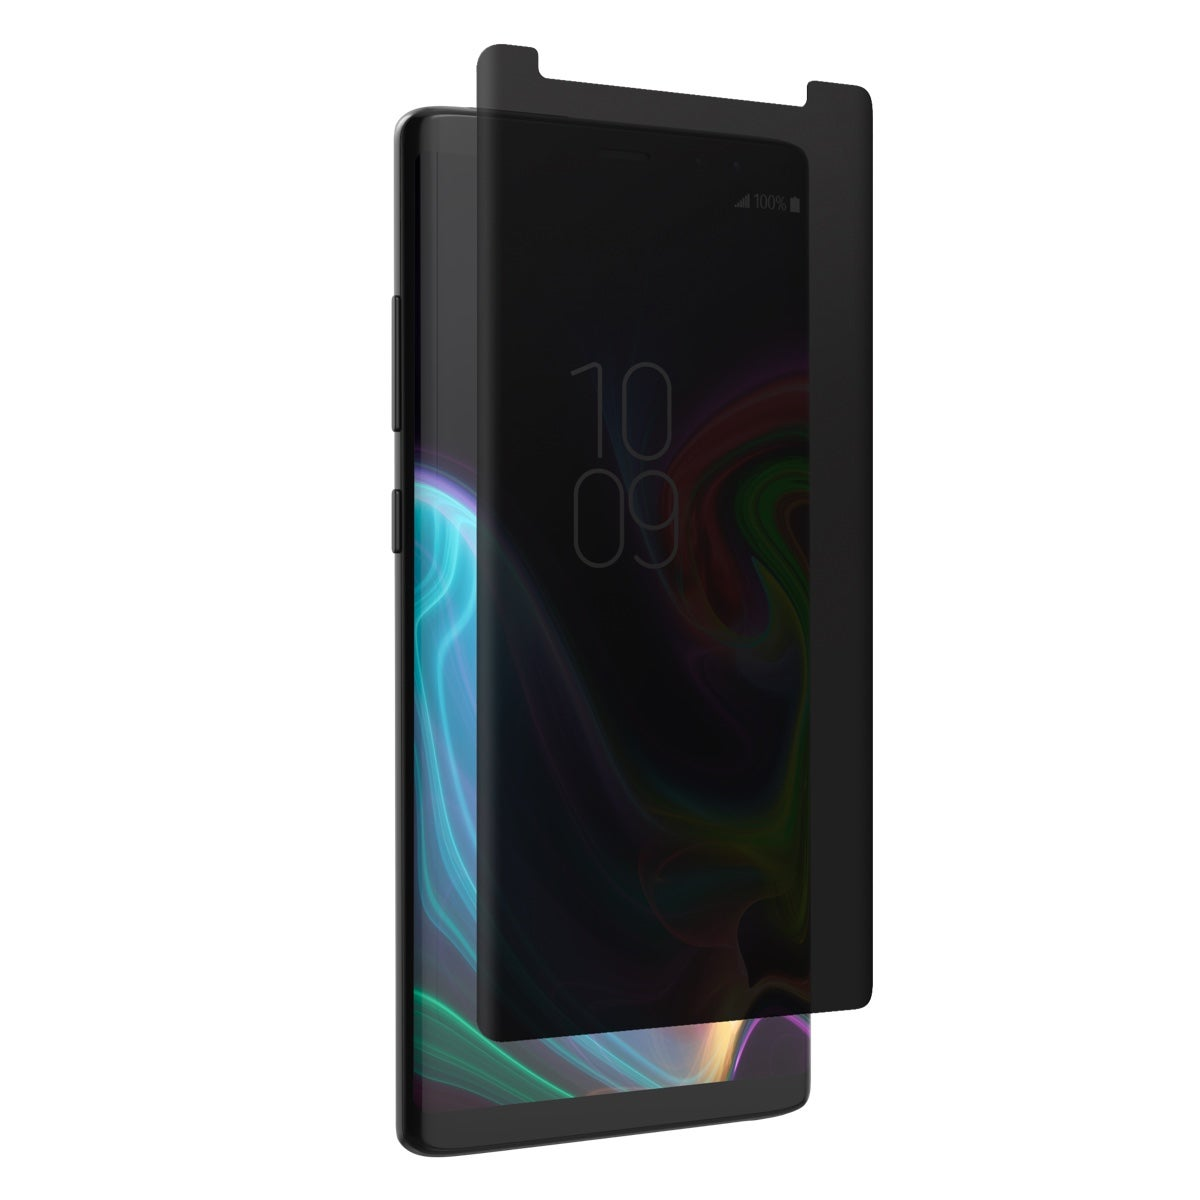 InvisibleShield Ultra Privacy for the Samsung Galaxy Note9 (Case Friendly)